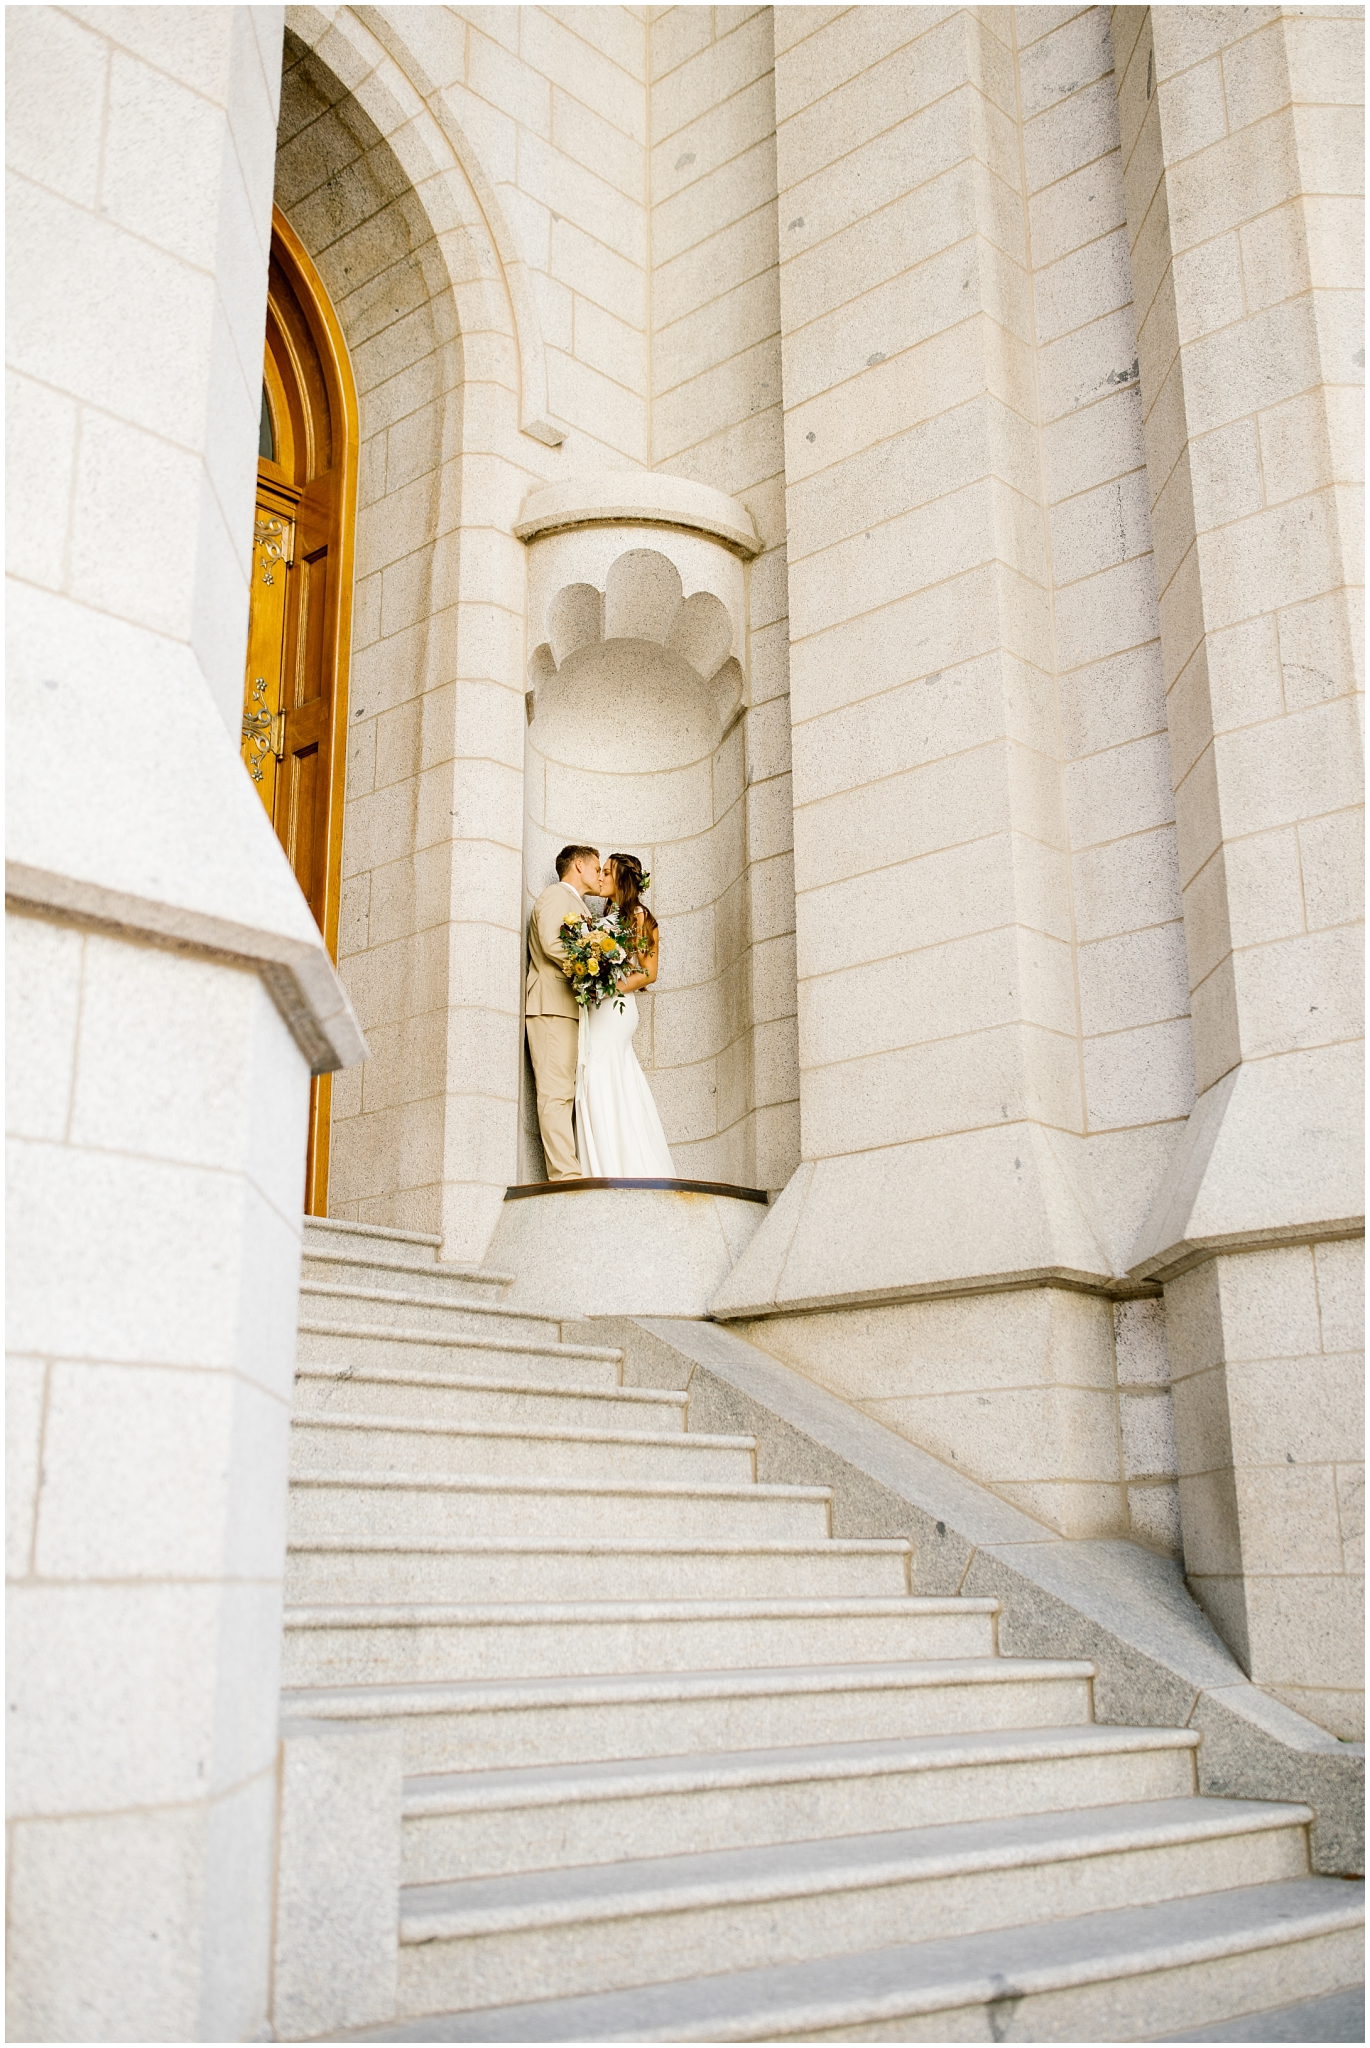 JC-Wedding-187_Lizzie-B-Imagery-Utah-Wedding-Photographer-Park-City-Salt-Lake-City-Temple-Joseph-Smith-Memorial-Building-Empire-Room.jpg